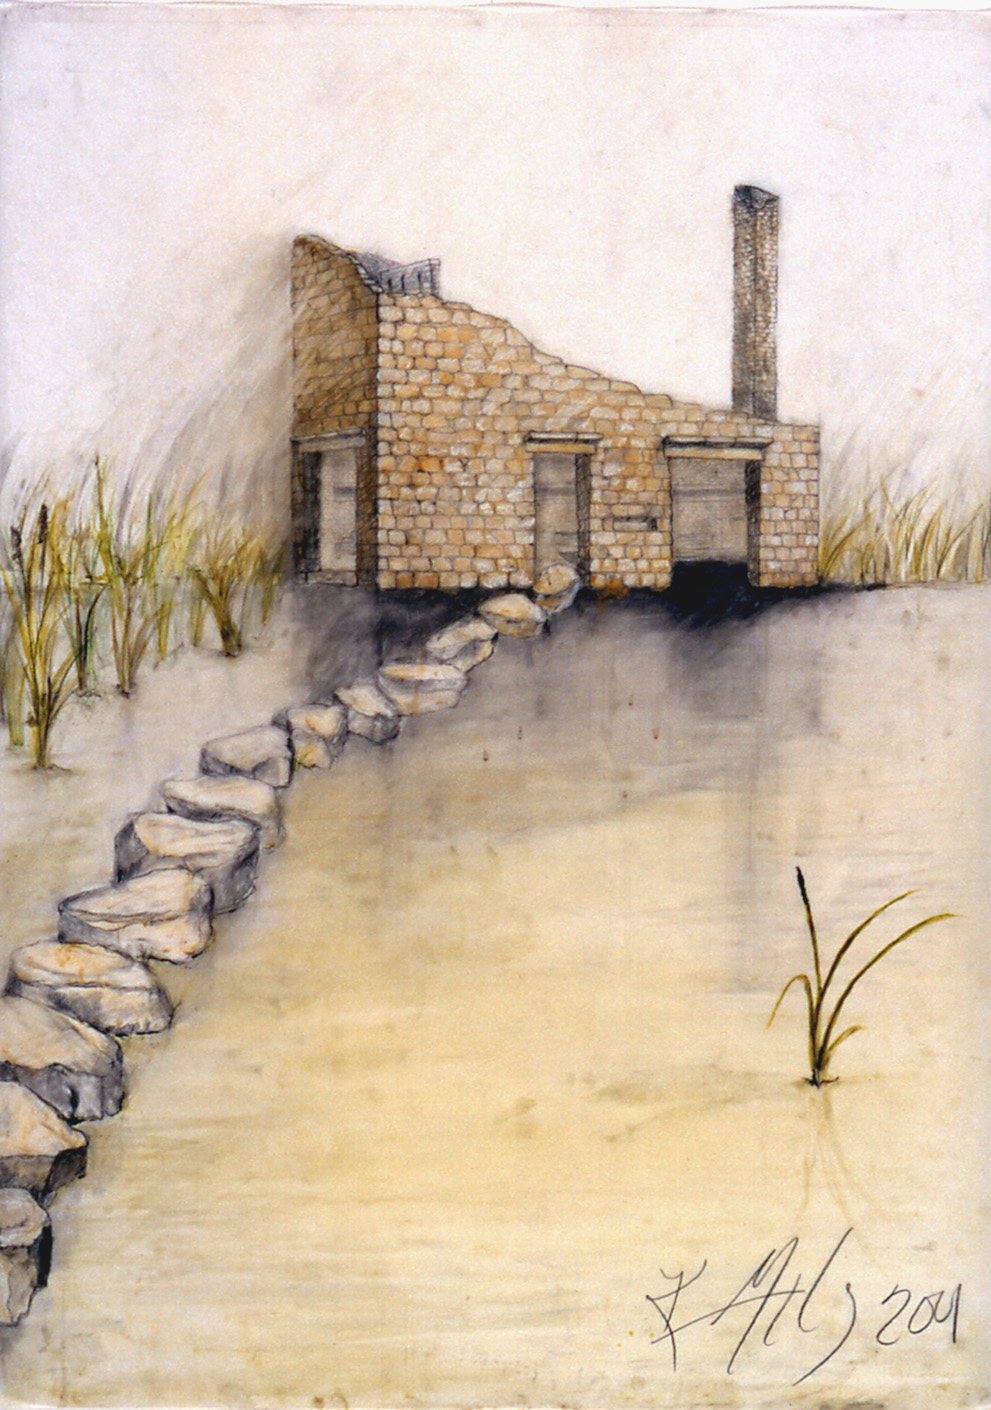 """Blind  Proposal Drawing for Riverfront Heritage Trail, Kansas City, MO, 2001-02  Mixed media on vellum, 26 x 36"""".  The size and shape of Blind are based on an old house that once existed near the site.Blind itself is a quiet place surrounded by a watery habitat that will become home to countless species when the old parking lot in Kansas City's River market area becomes a wetland. Blind is designed with viewing slits and a """"crows nest"""" upstairs for longer views across the wetland and Missouri River. Nesting platforms are built in the """"chimney"""" and on ledges in the stonework. Lingering there, human visitors may see a turtle basking on a log or a blue heron stretching its wings. Here, screened from view, city people can quietly connect with the natural world in a place that encourages observation, contemplation and listening."""